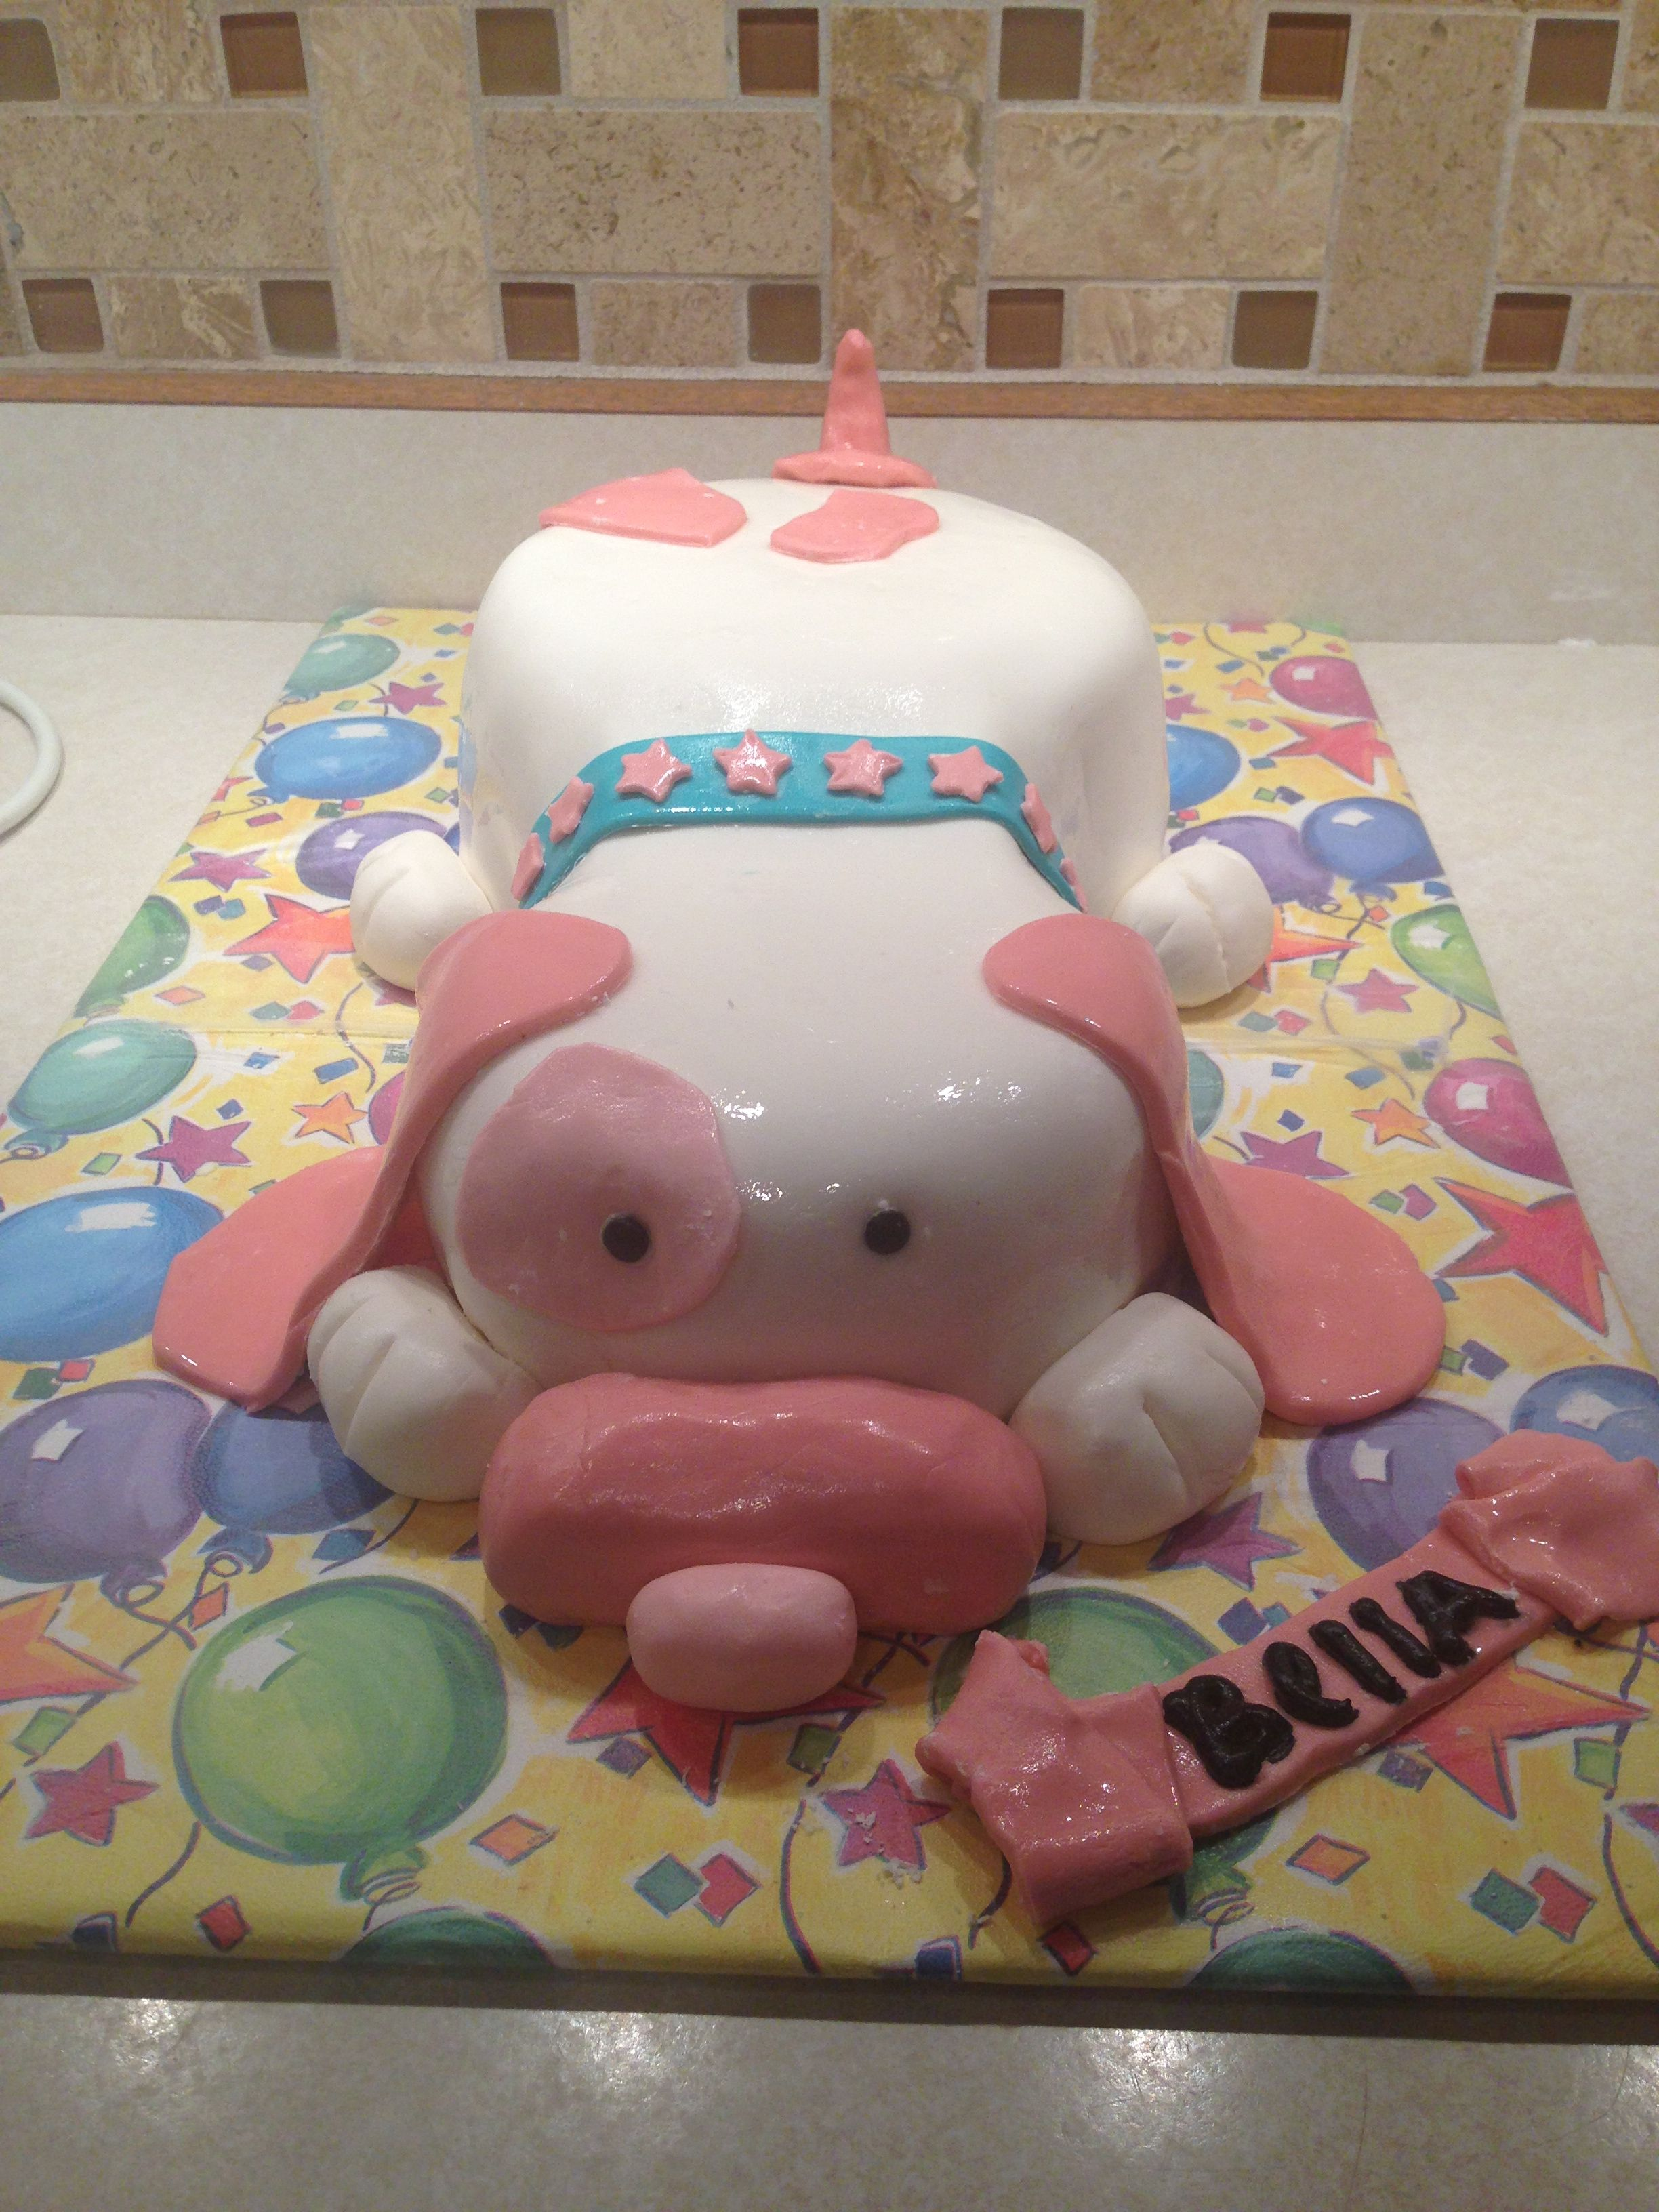 Puppy cake for kids cakes pinterest puppy cake cake and